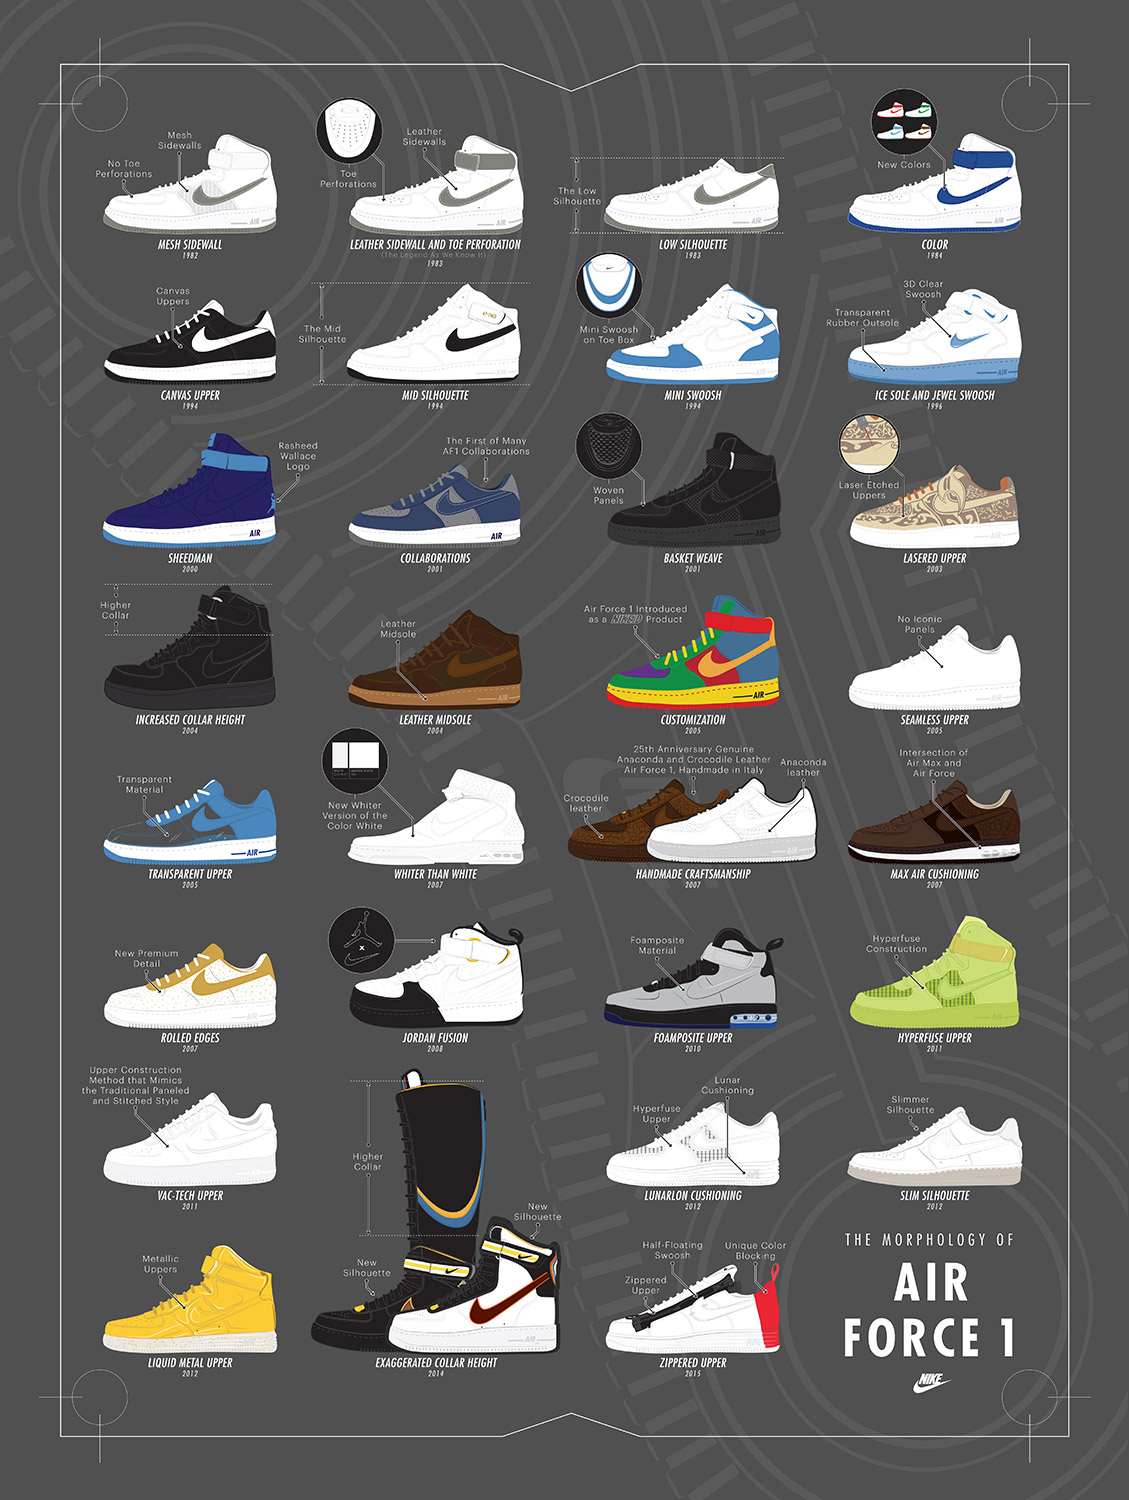 nike-air-force-1-morphology-02